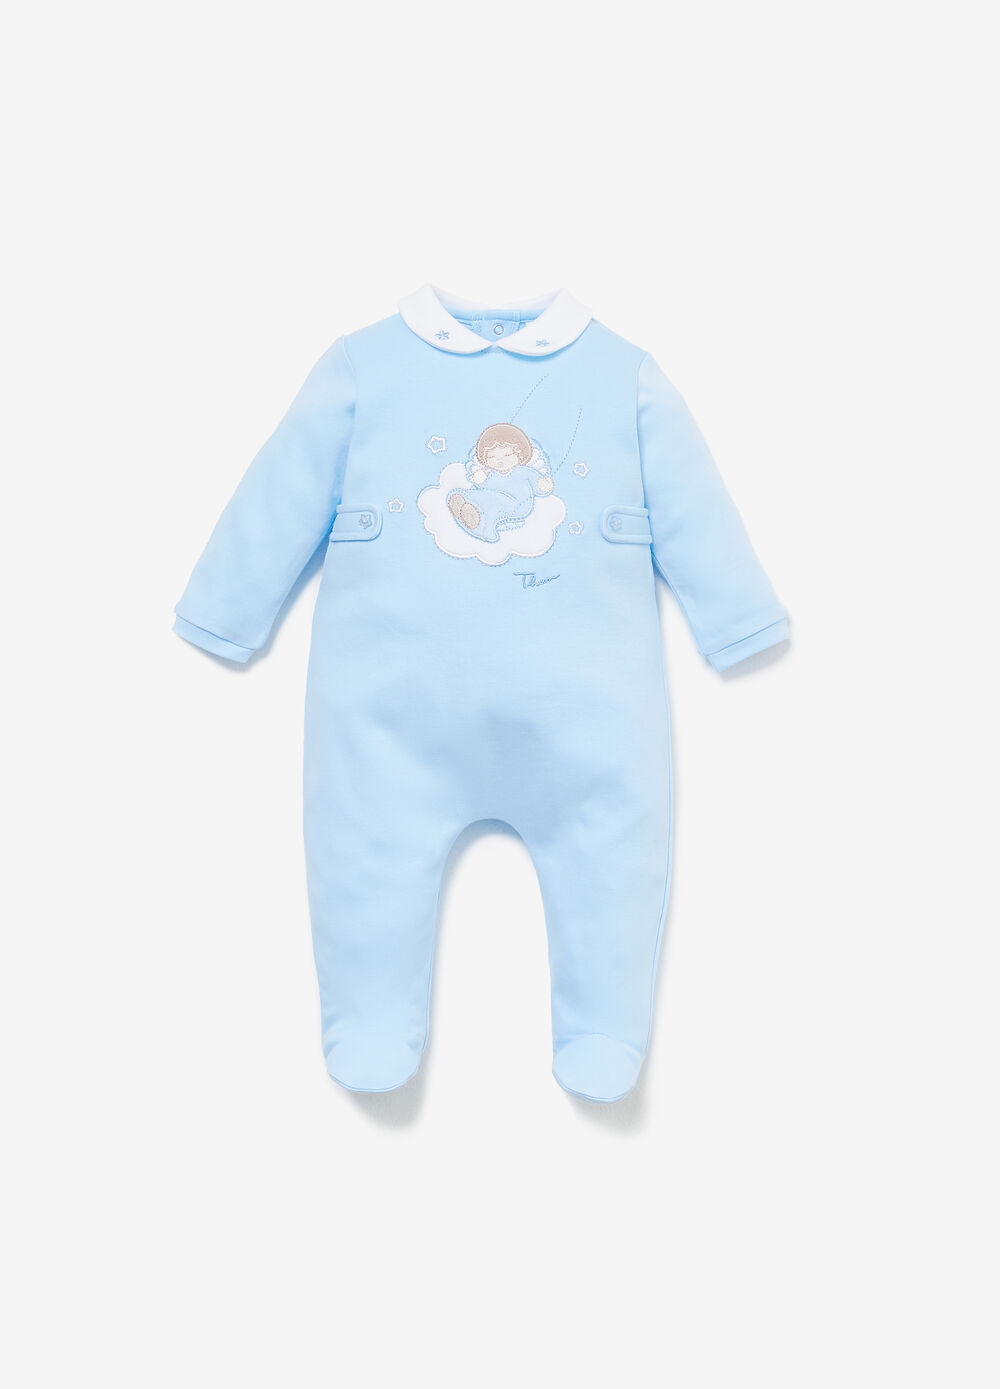 THUN Angels romper suit in 100% cotton